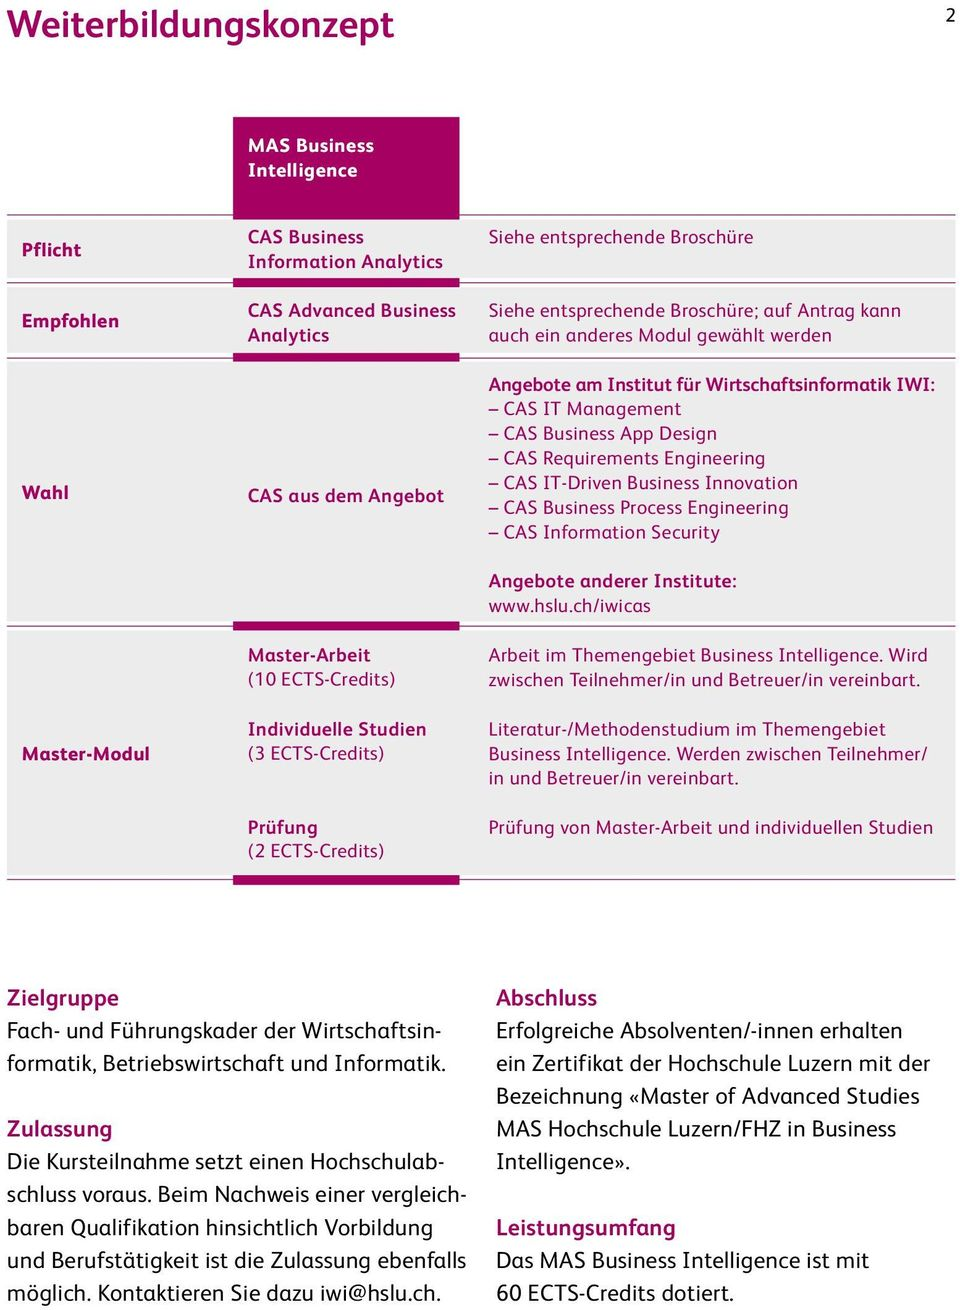 Angebote am Institut für Wirtschaftsinformatik IWI: CAS IT Management CAS Business App Design CAS Requirements Engineering CAS IT-Driven Business Innovation CAS Business Process Engineering CAS